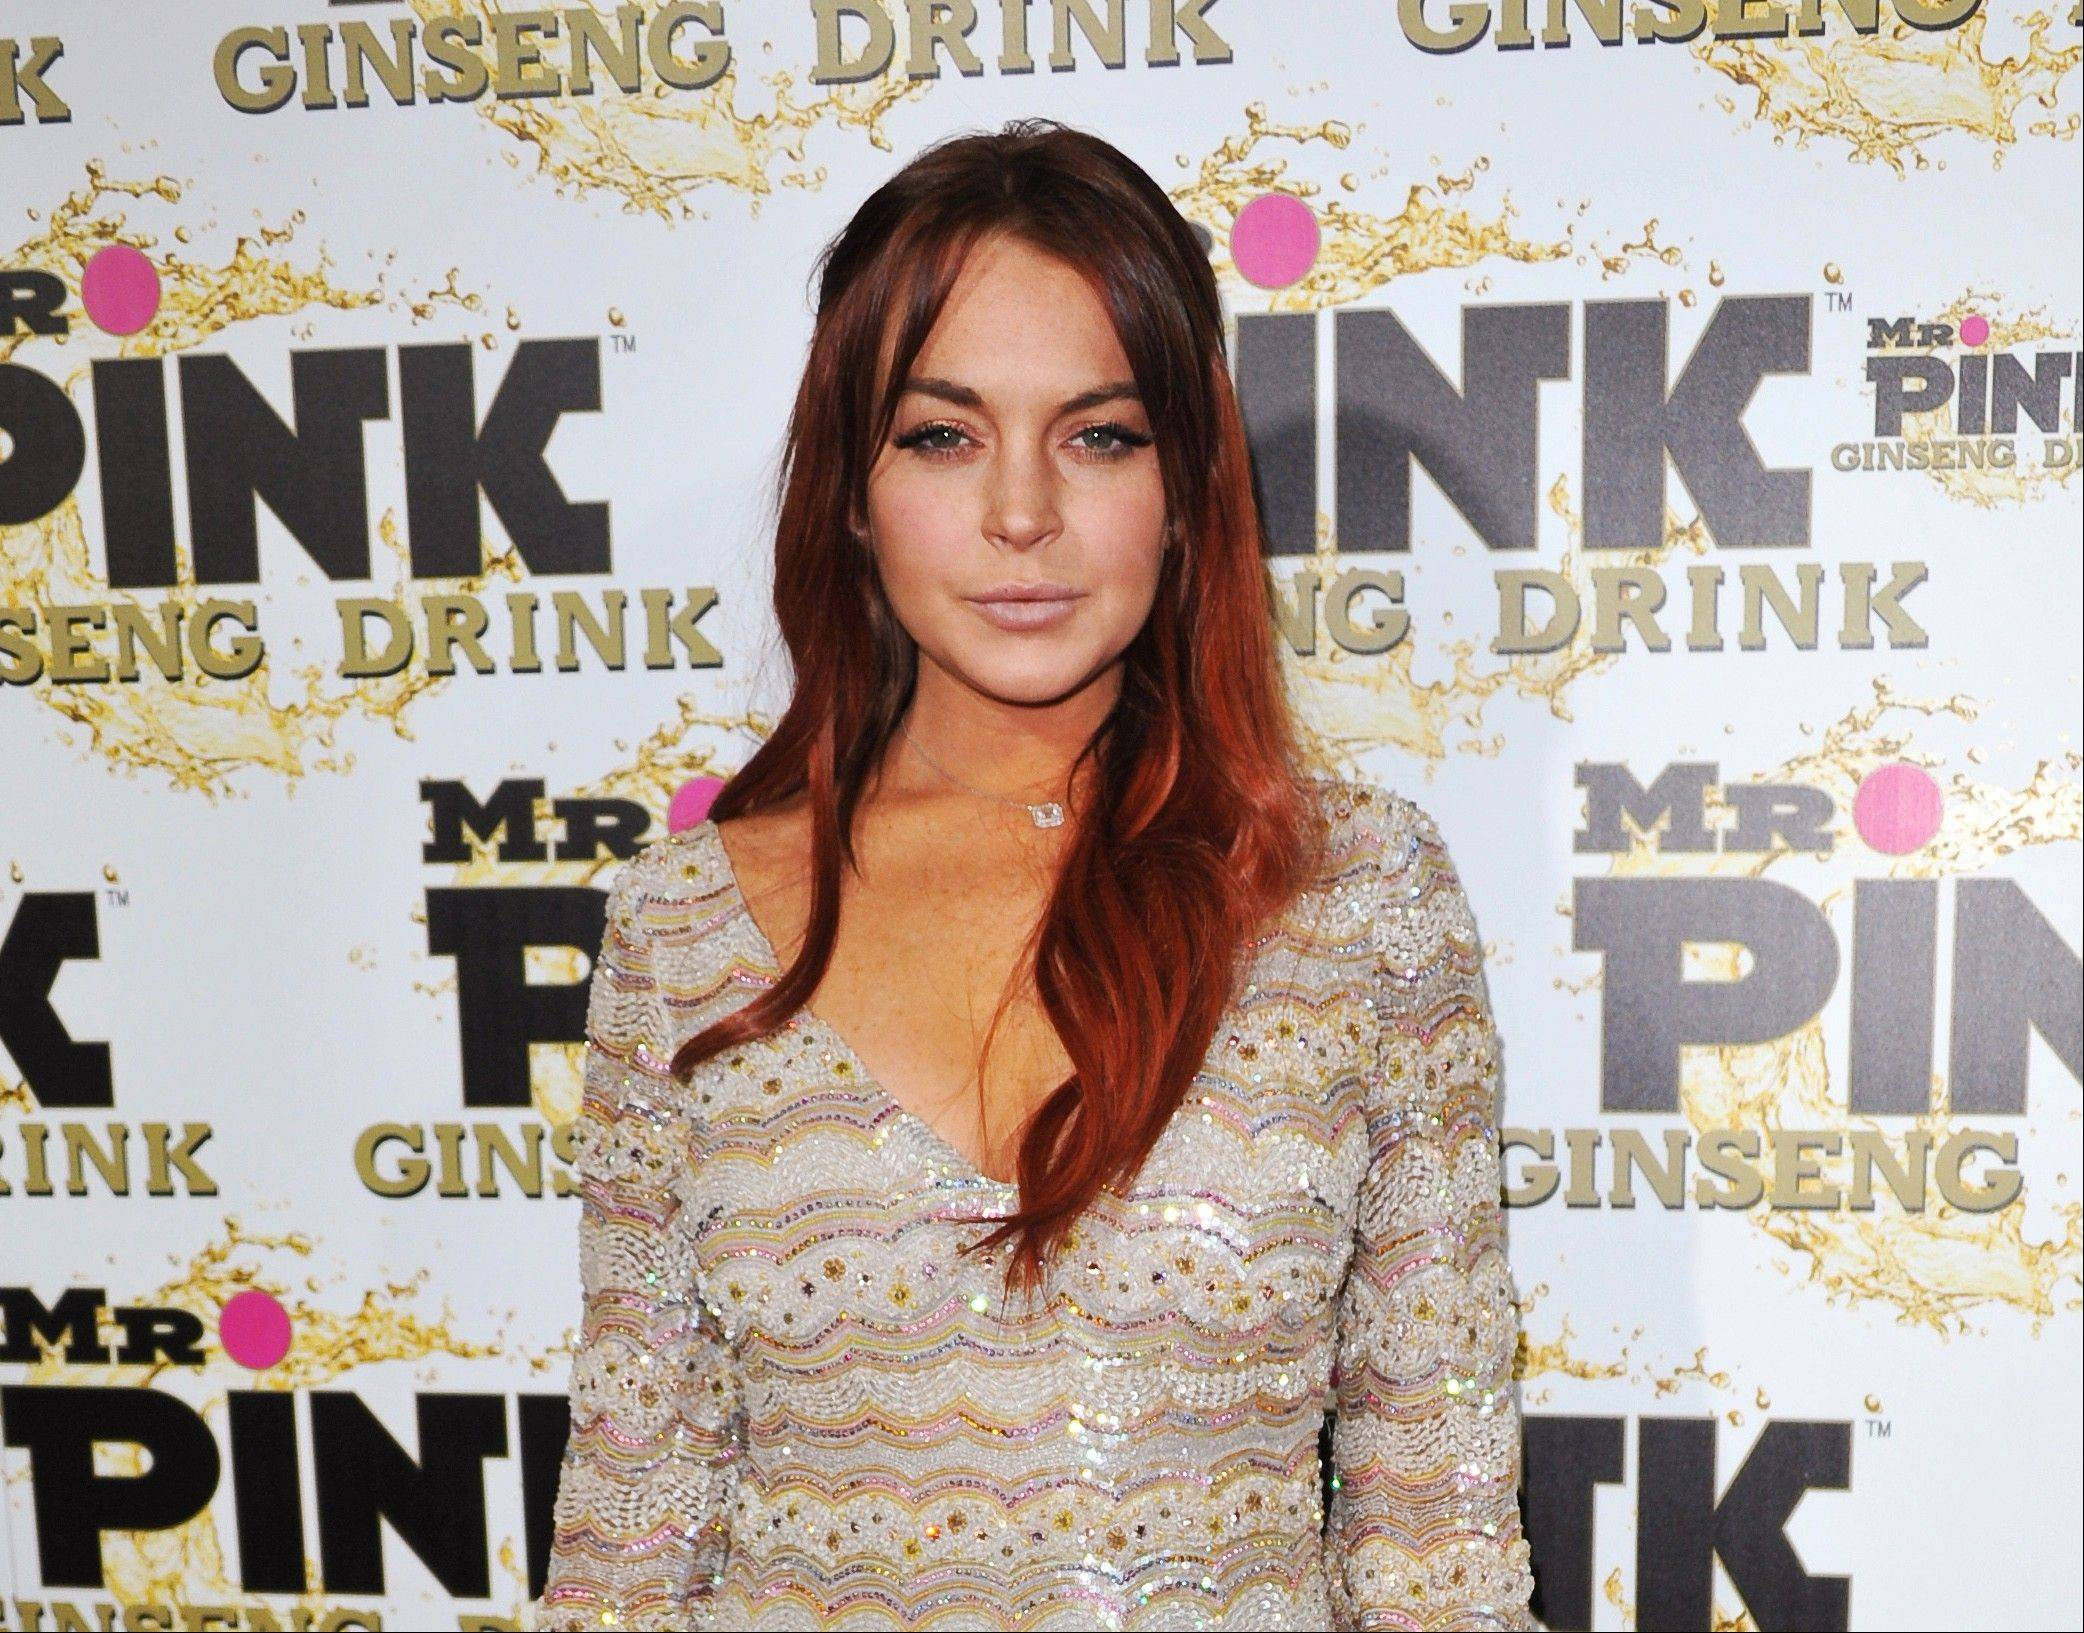 A Los Angeles judge ordered Lohan on Wednesday to undergo 18 months of therapy sessions to continue treatment after a successful three-month stay in rehab facilities as part of her sentence in a misdemeanor case filed after a car accident in June 2012.